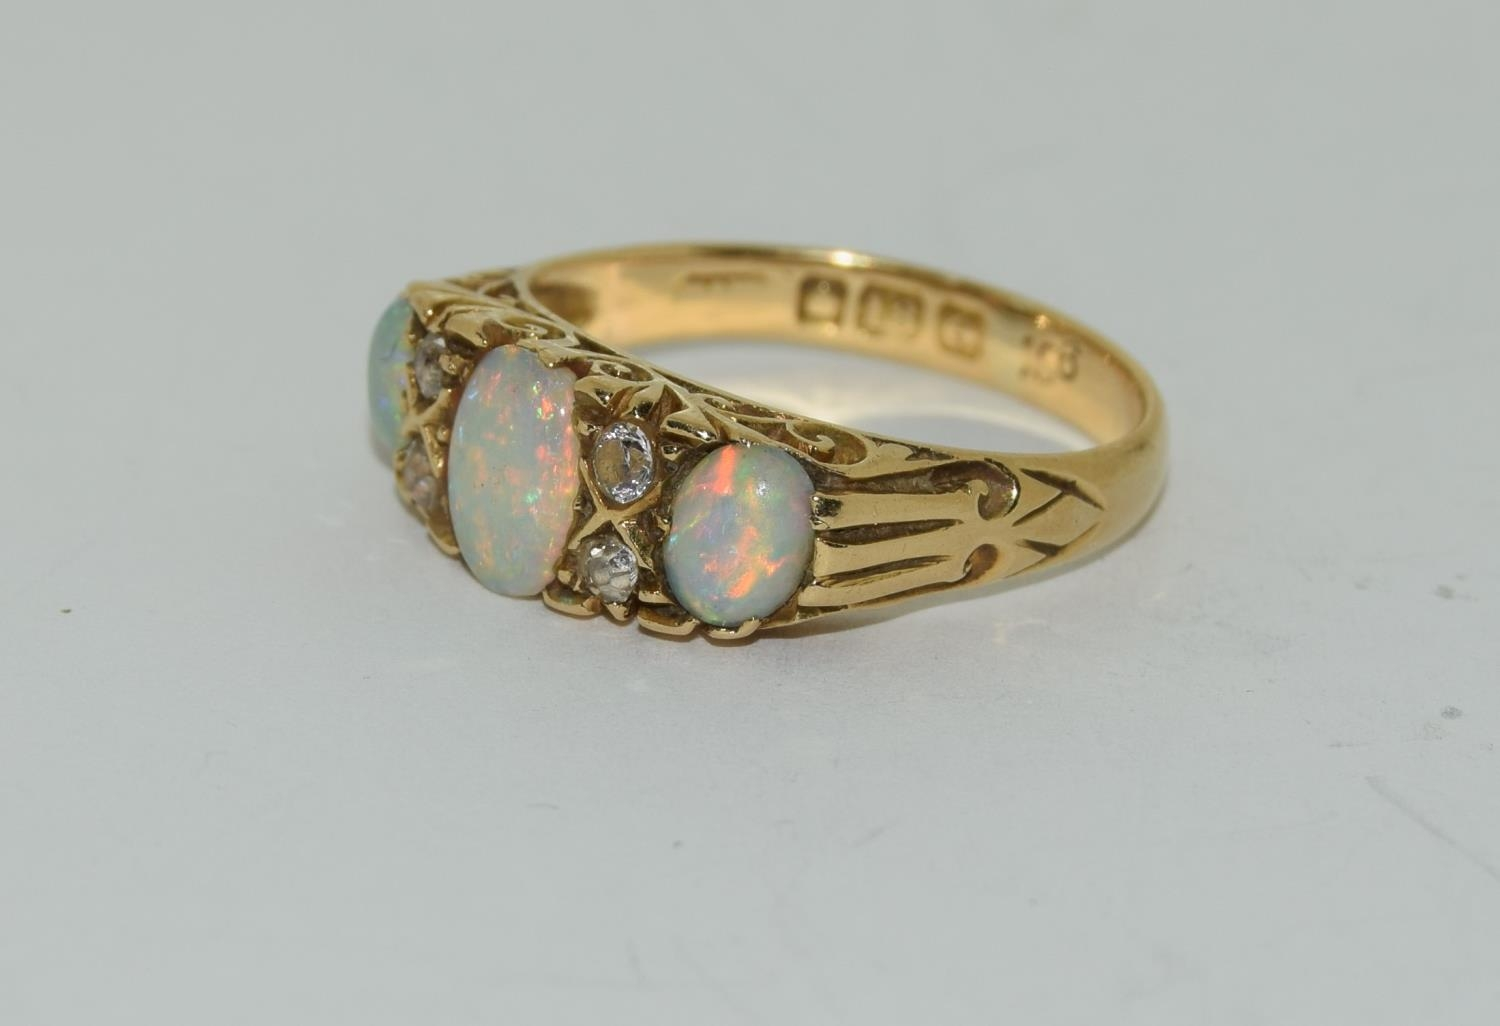 18ct gold ladies 3 stone opal and diamond ring size M - Image 4 of 5